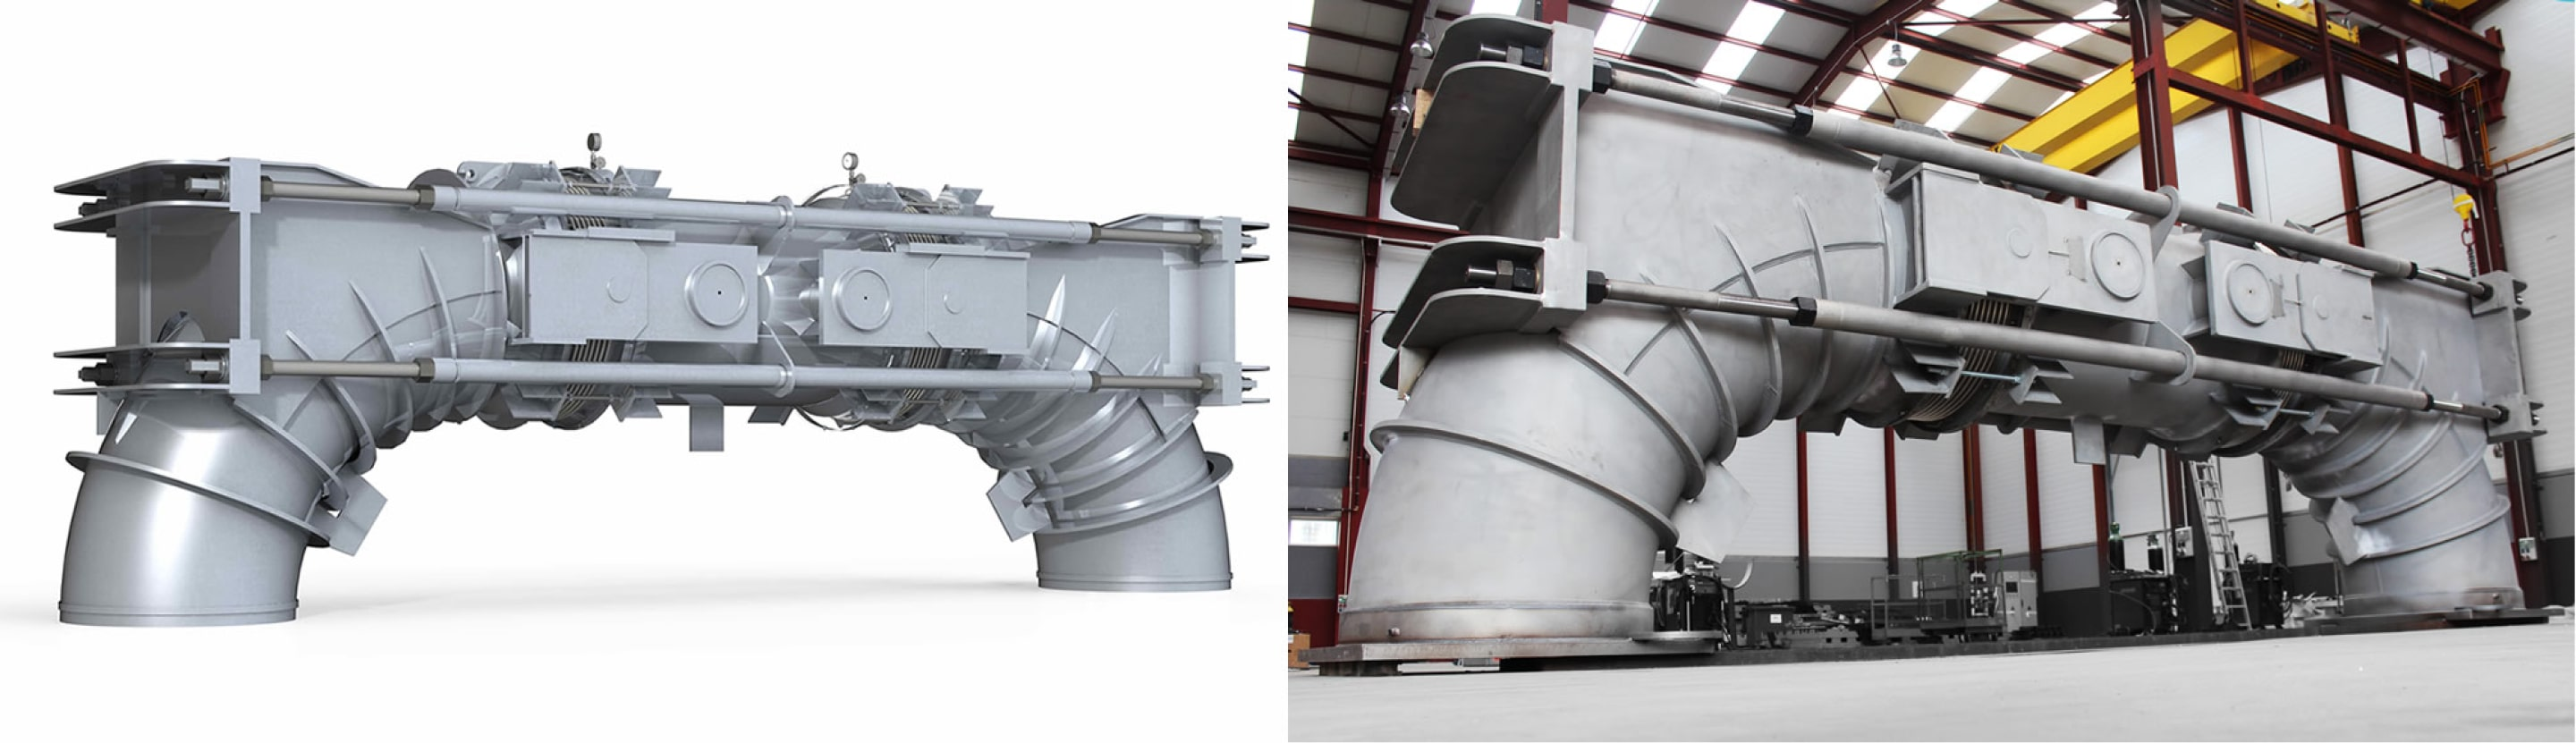 FCCU Expansion Joints for Fluid Catalytic Cracking Expansion Units